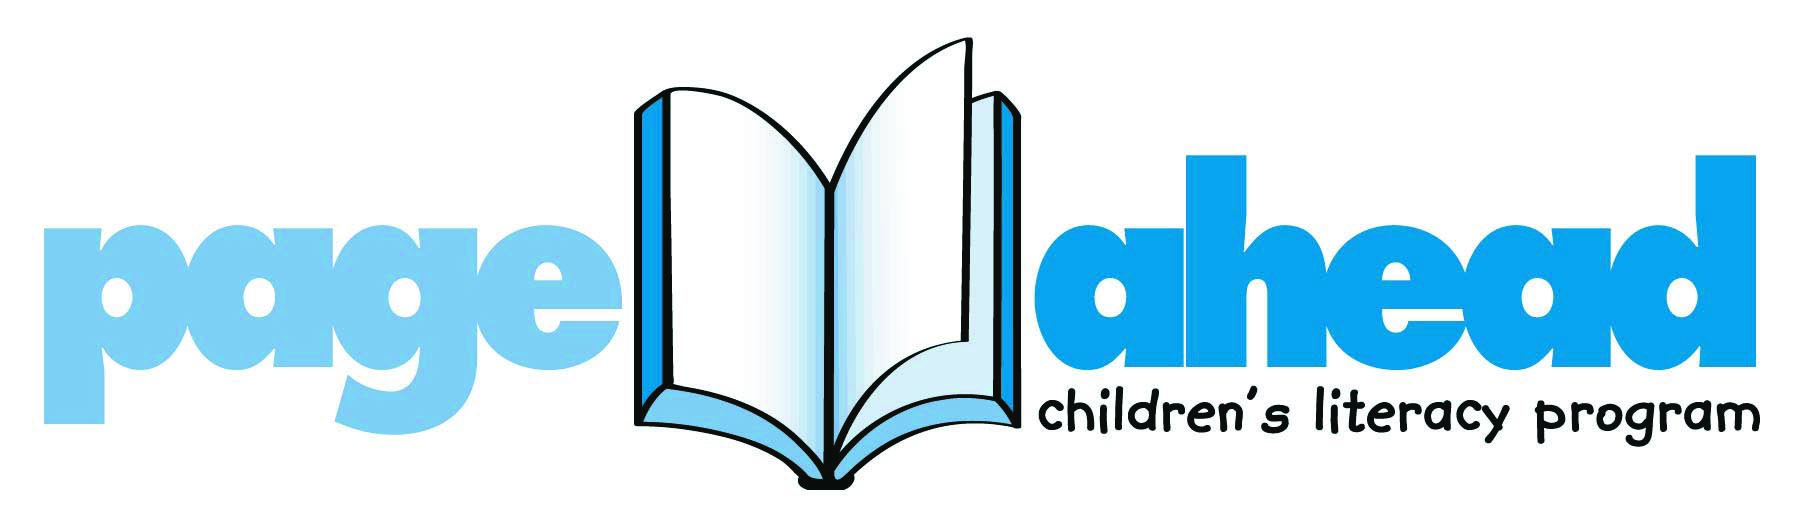 Page Ahead Children's Literacy Program